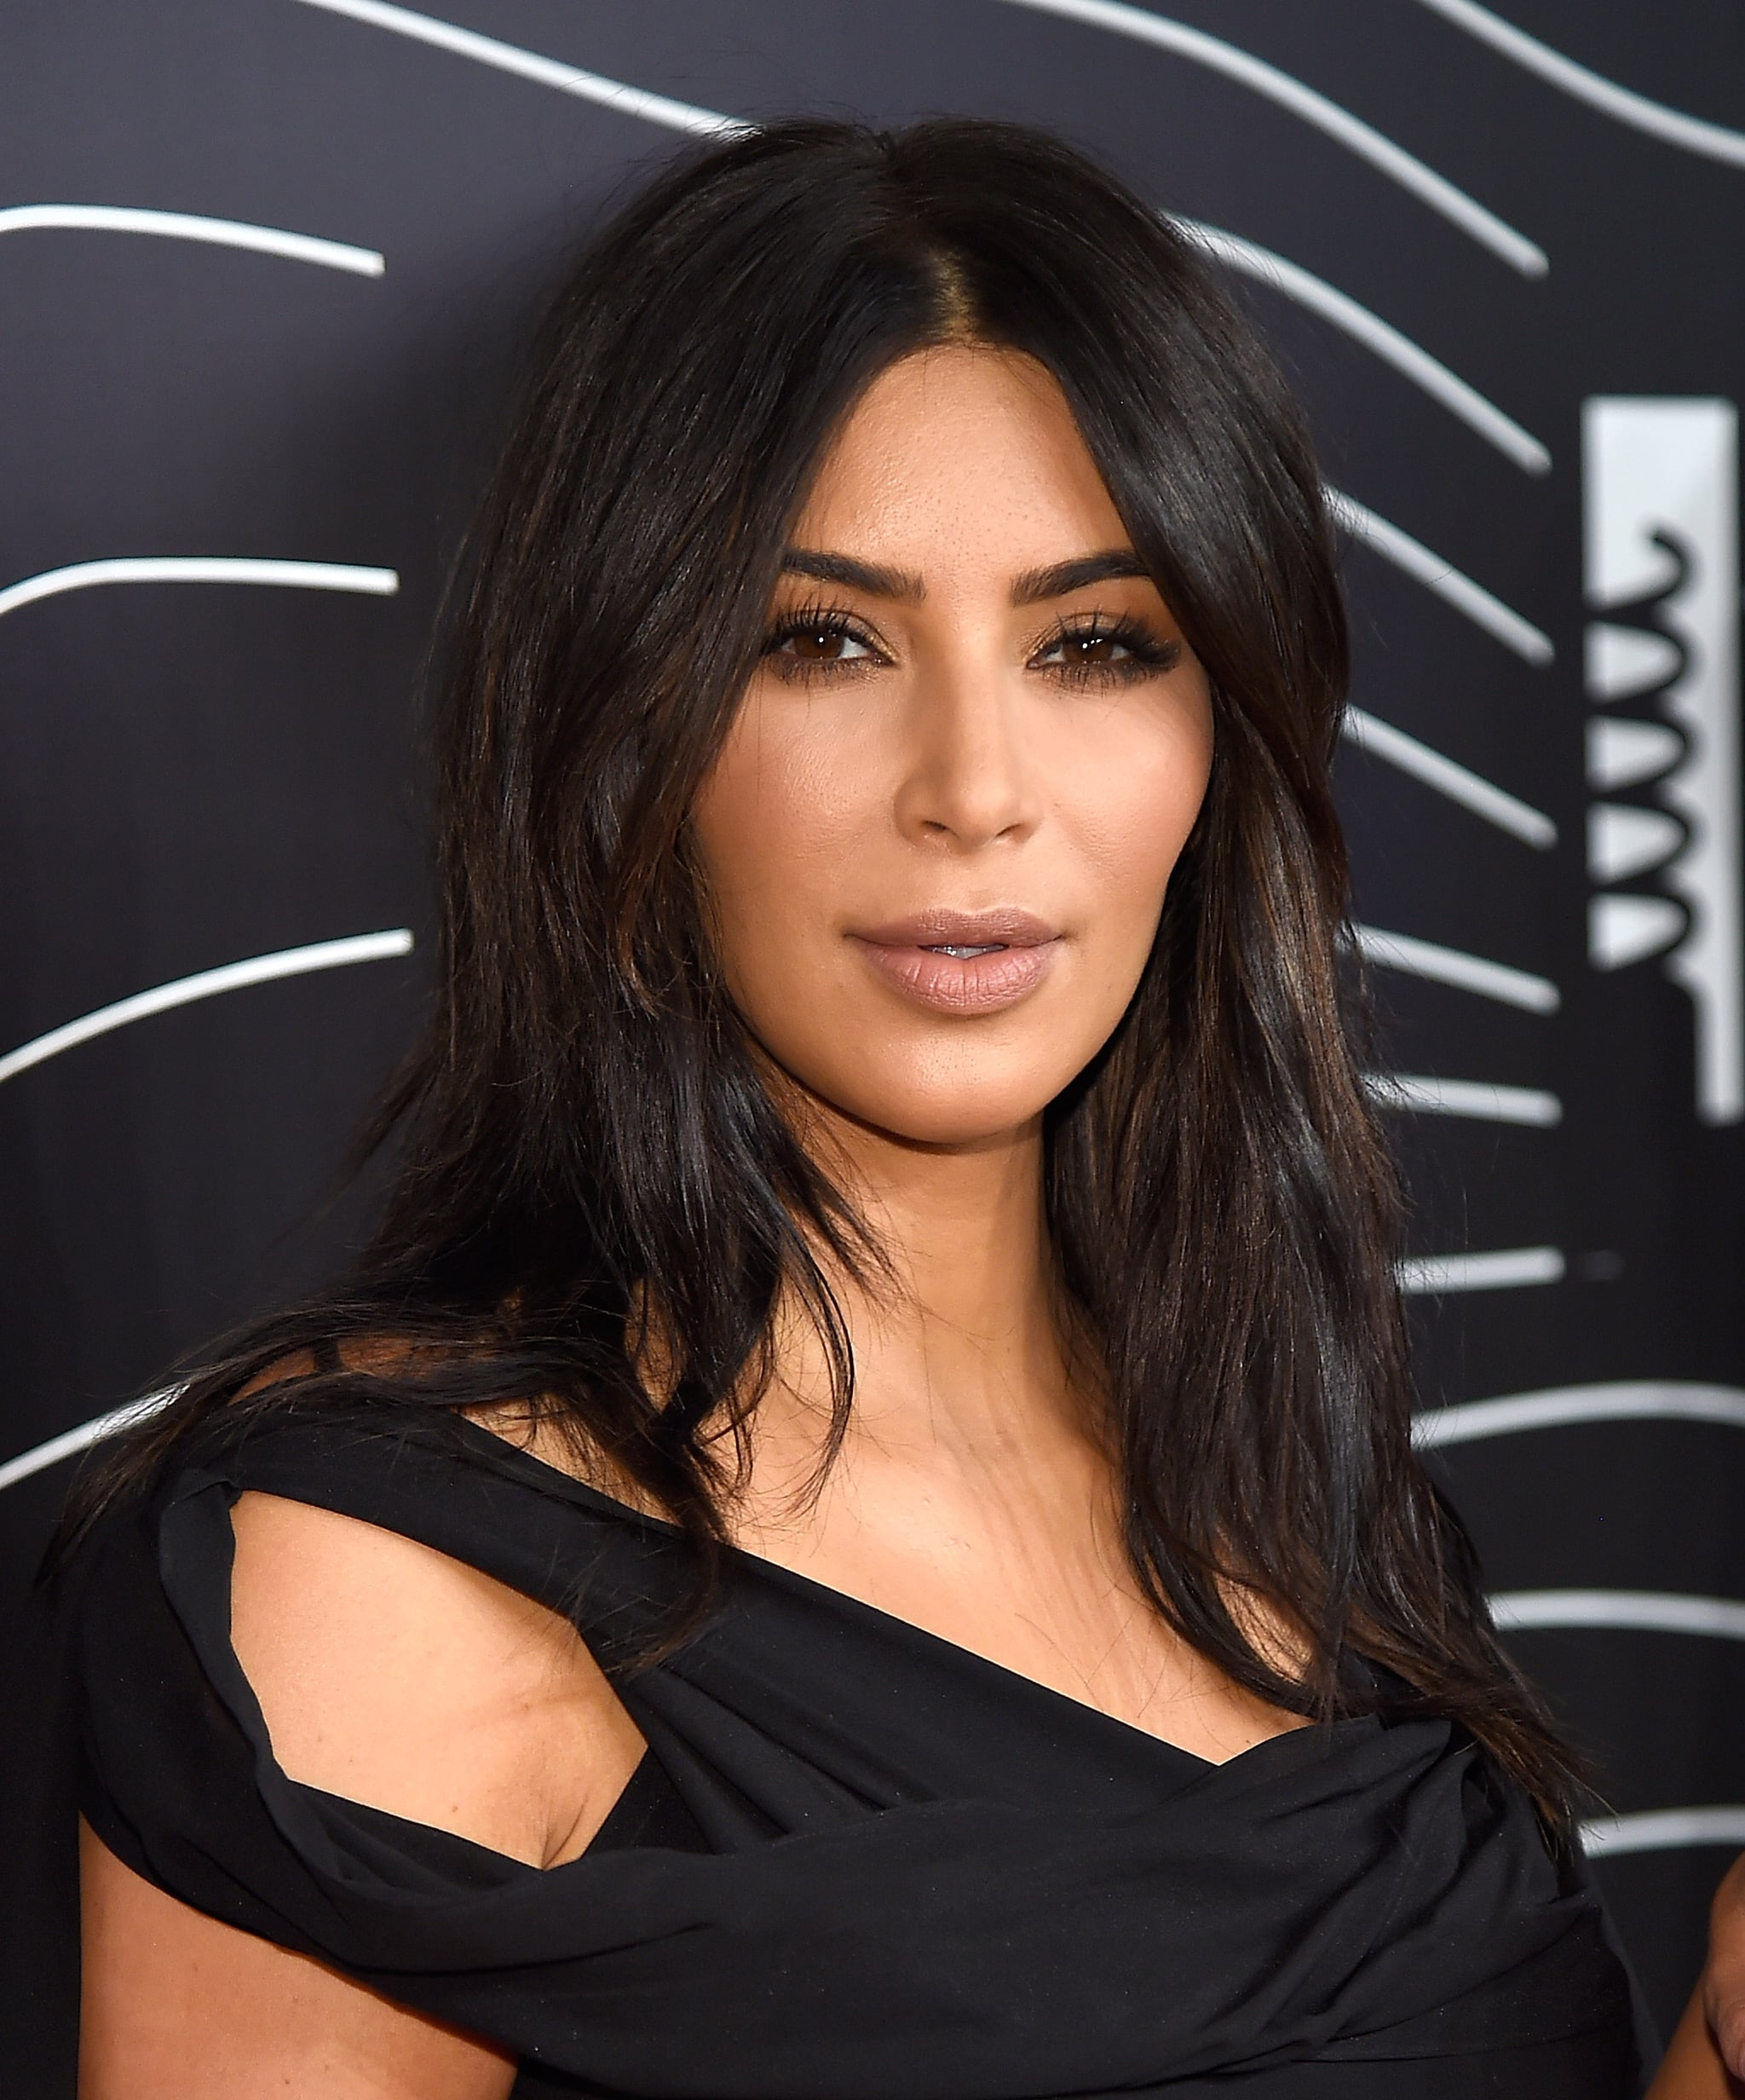 You Have Lightly Wavy Hair Like Kim Kardashian A Celebrity Stylist Reveals How To Get The Best Beach Waves Of Your Life This Summer Popsugar Beauty Photo 3